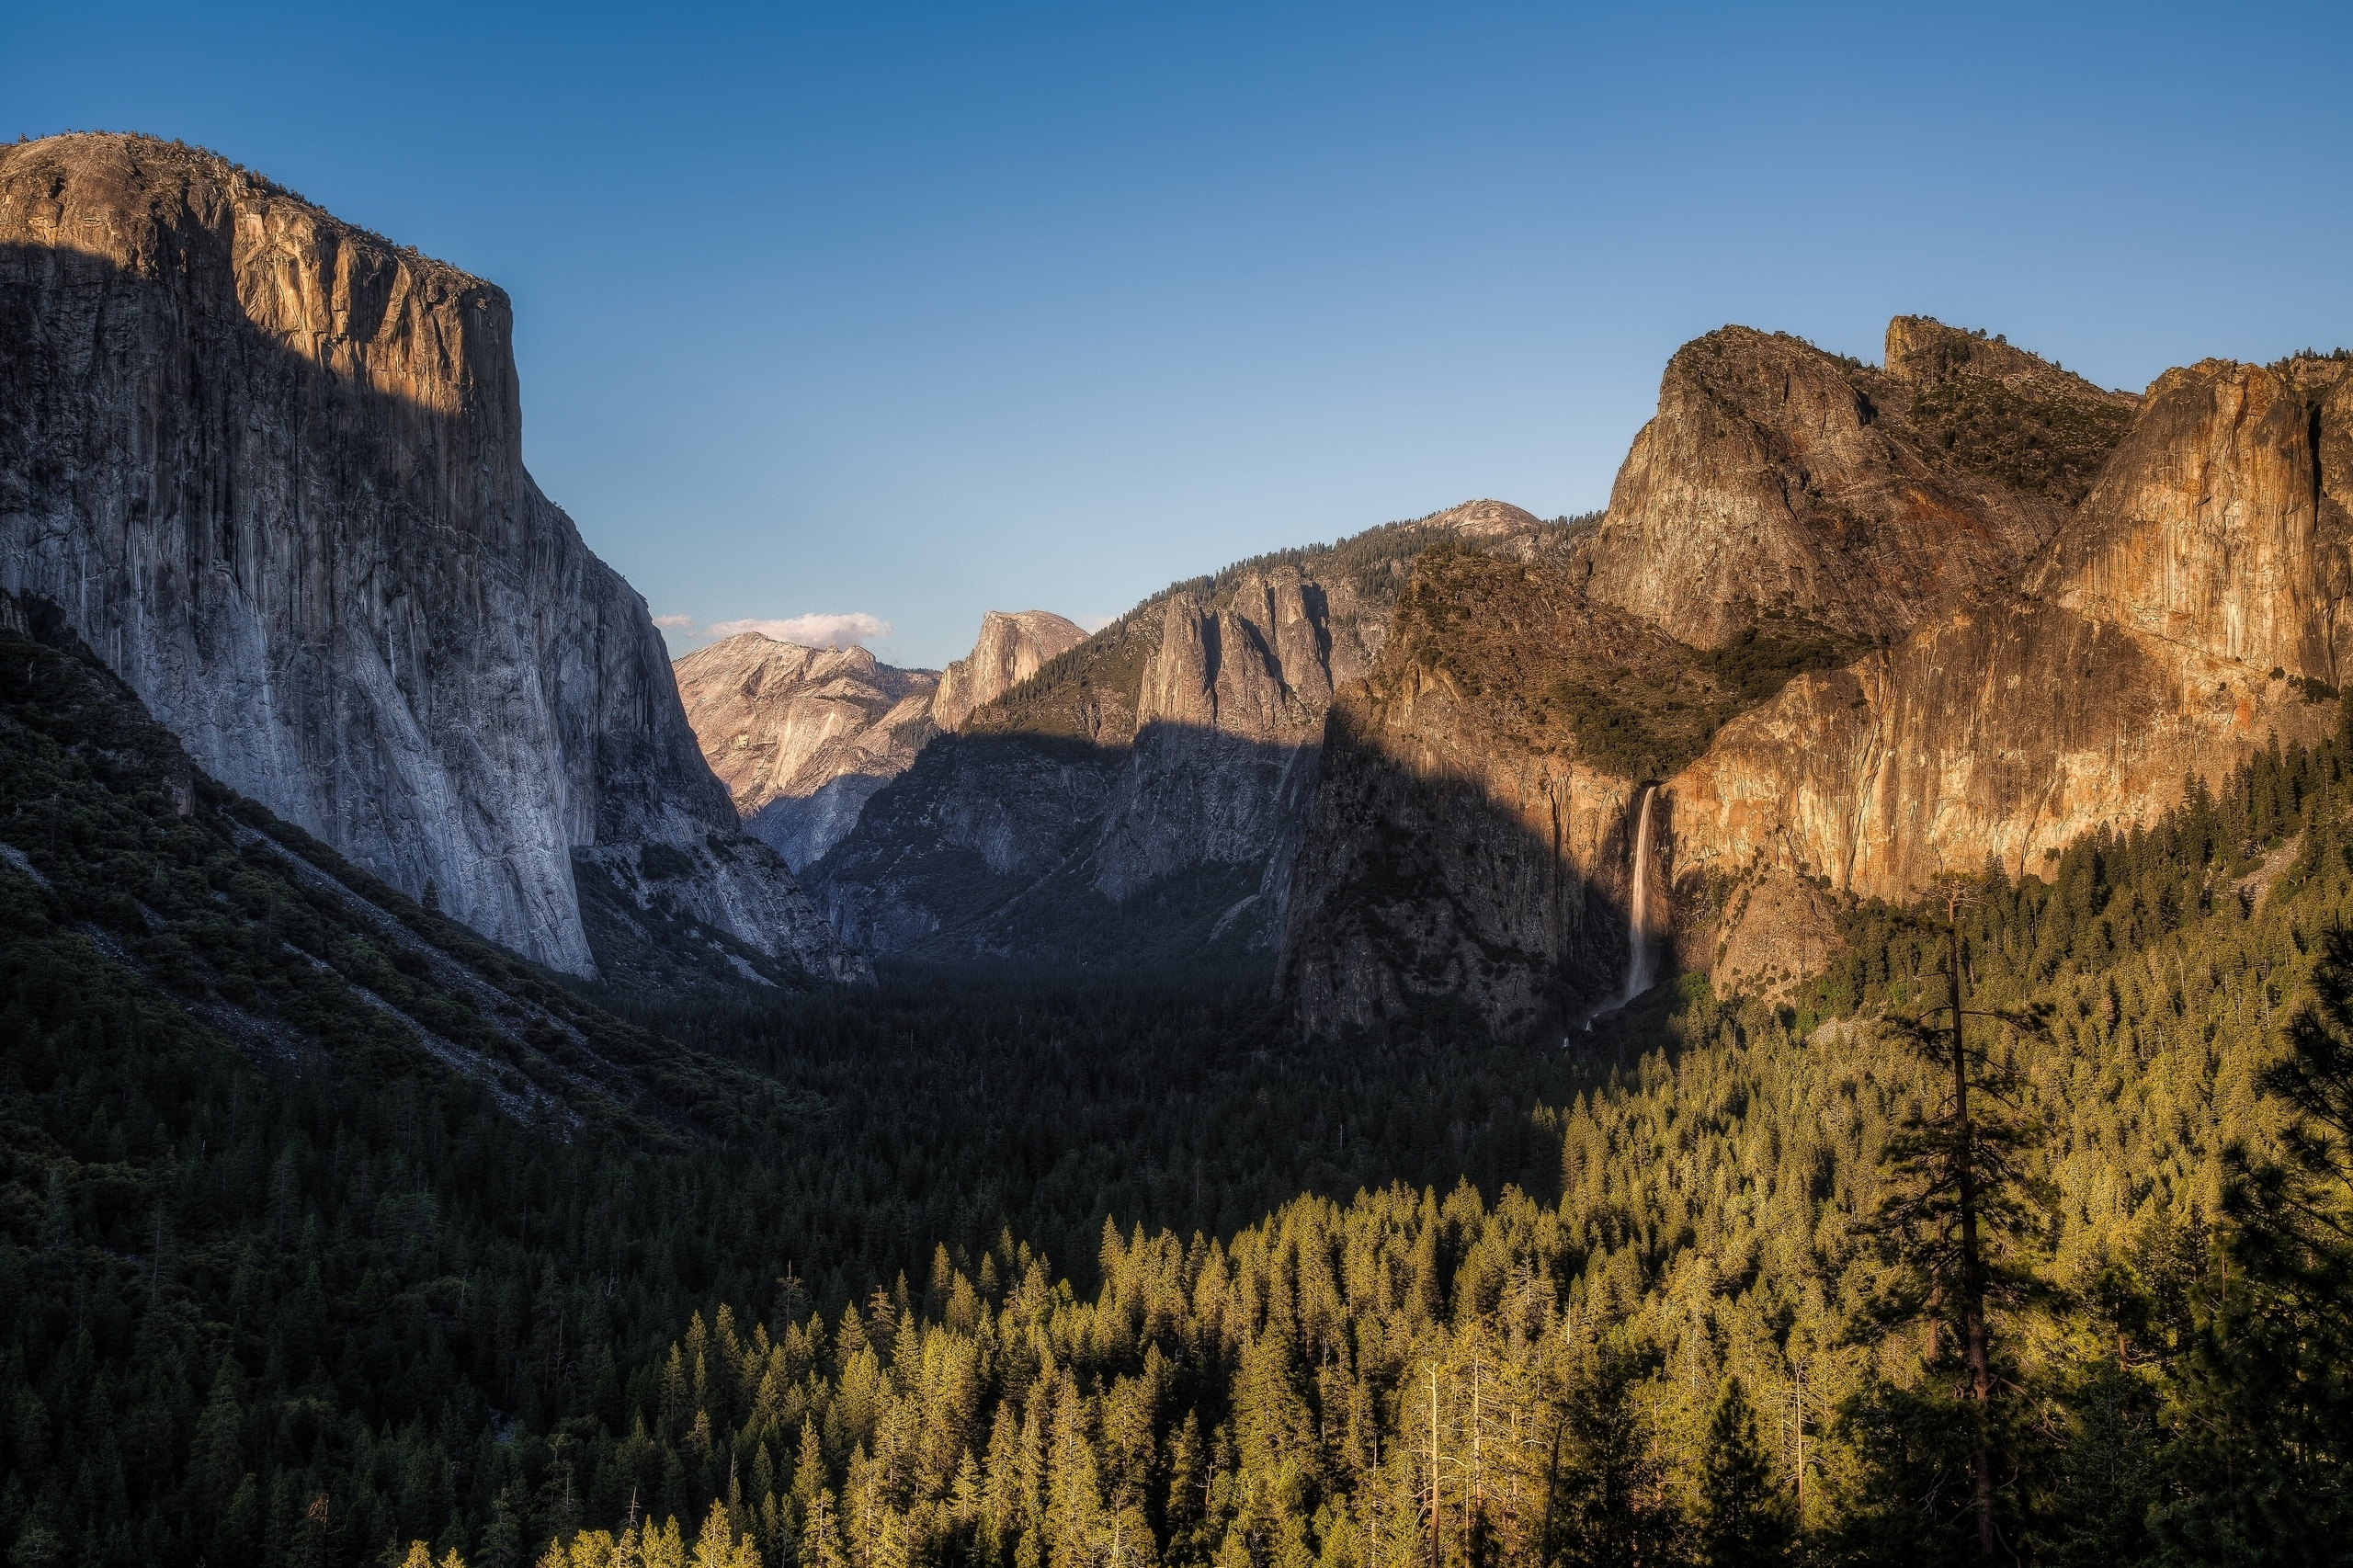 Hd wallpaper yosemite - Yosemite National Park Wallpaper 2560x1706